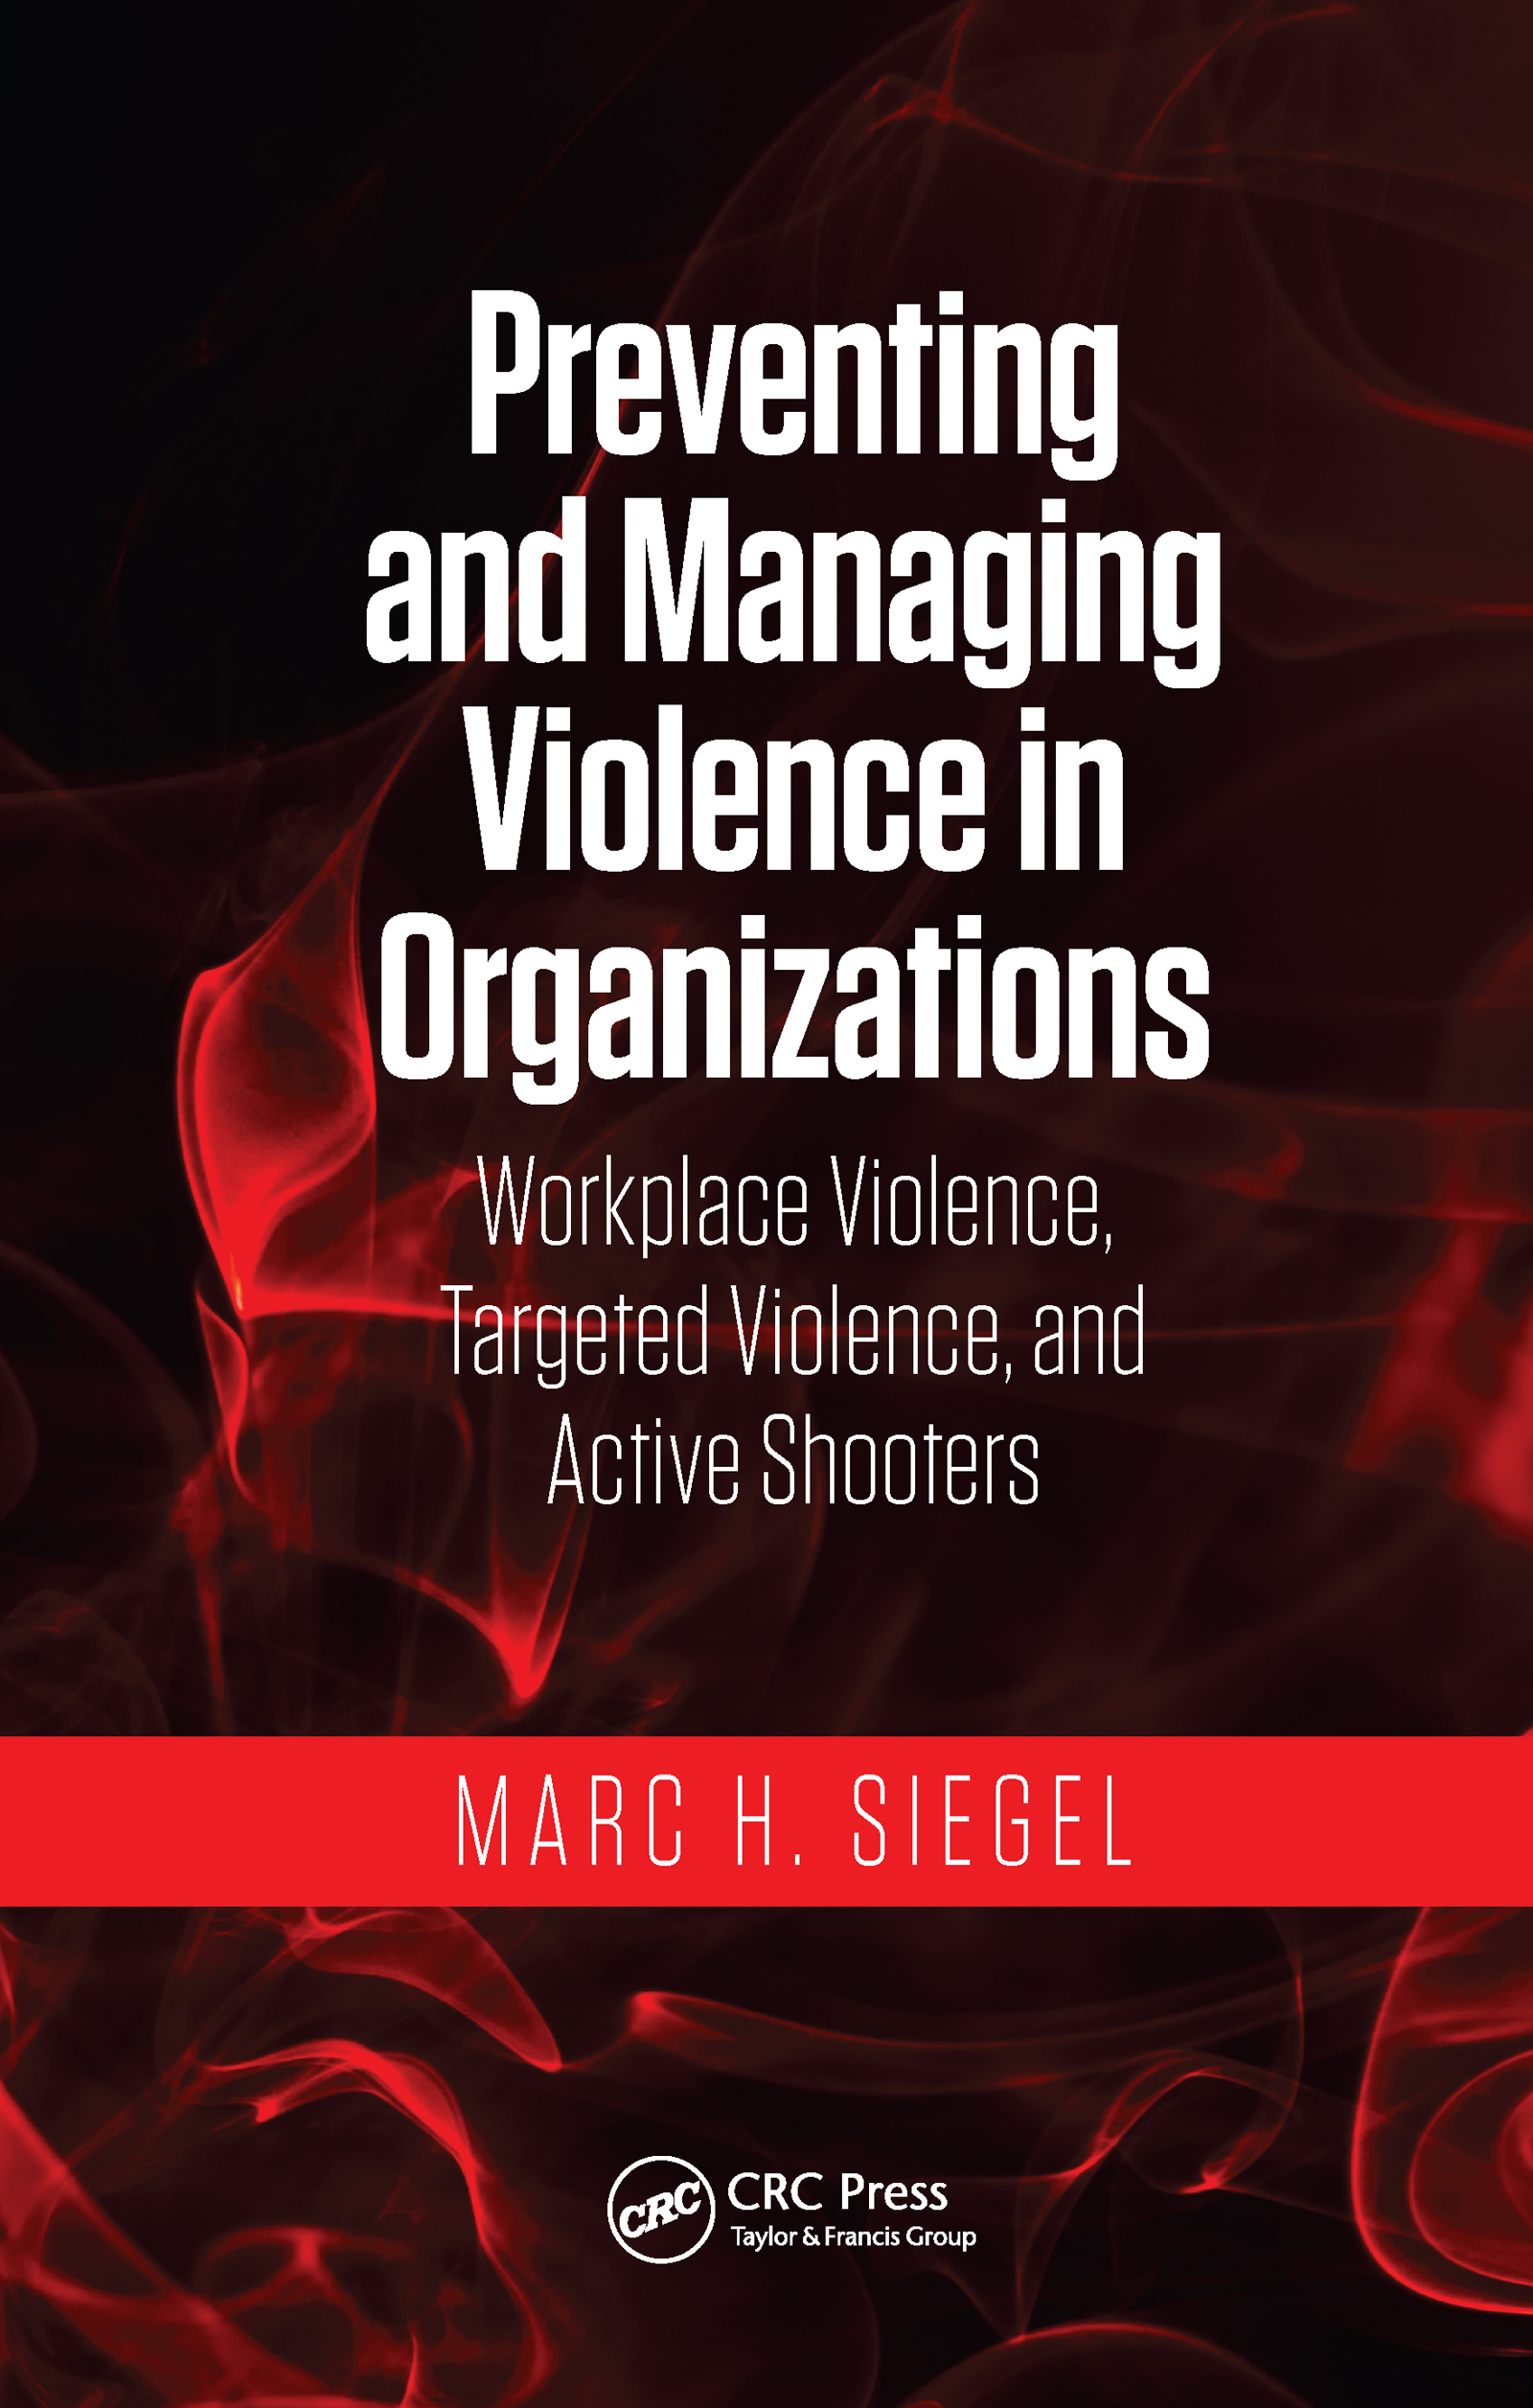 Preventing and Managing Violence in Organizations